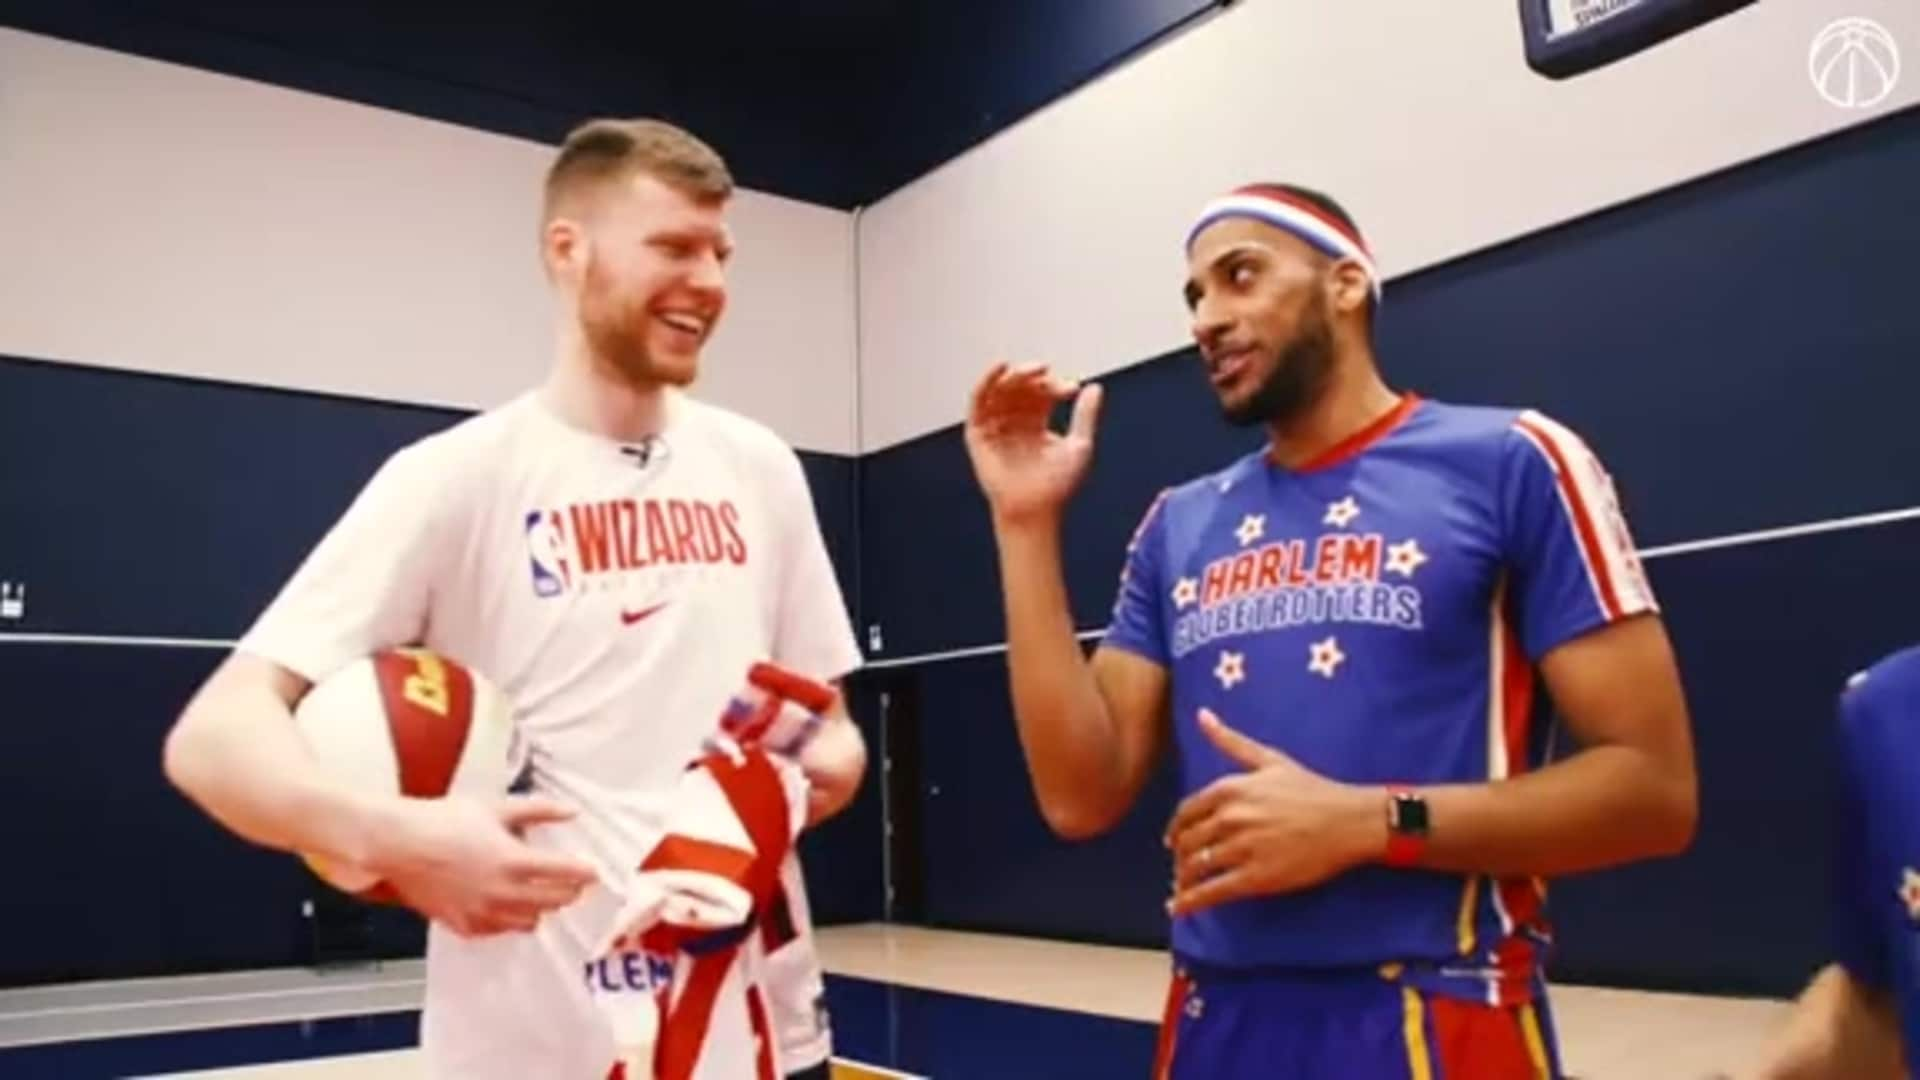 Wizards Featured: Davis Bertans and the Harlem Globetrotters - 3/11/20